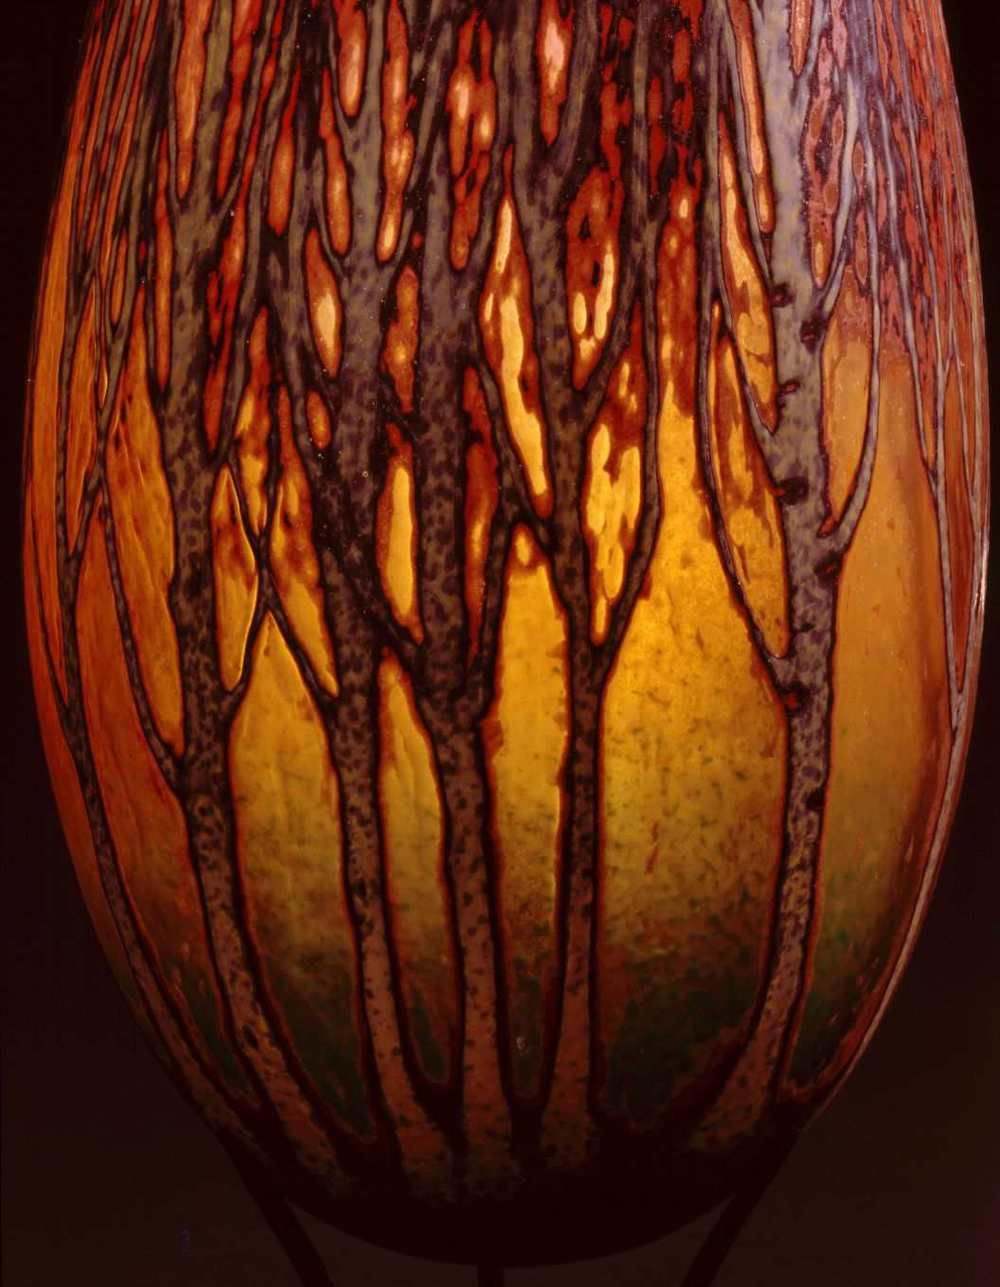 Detail - William Morris,  Vase with Poplar Tree Grove    (2004, glass, 15 x 7 1/8 x 7 1/8 inches), WM.33